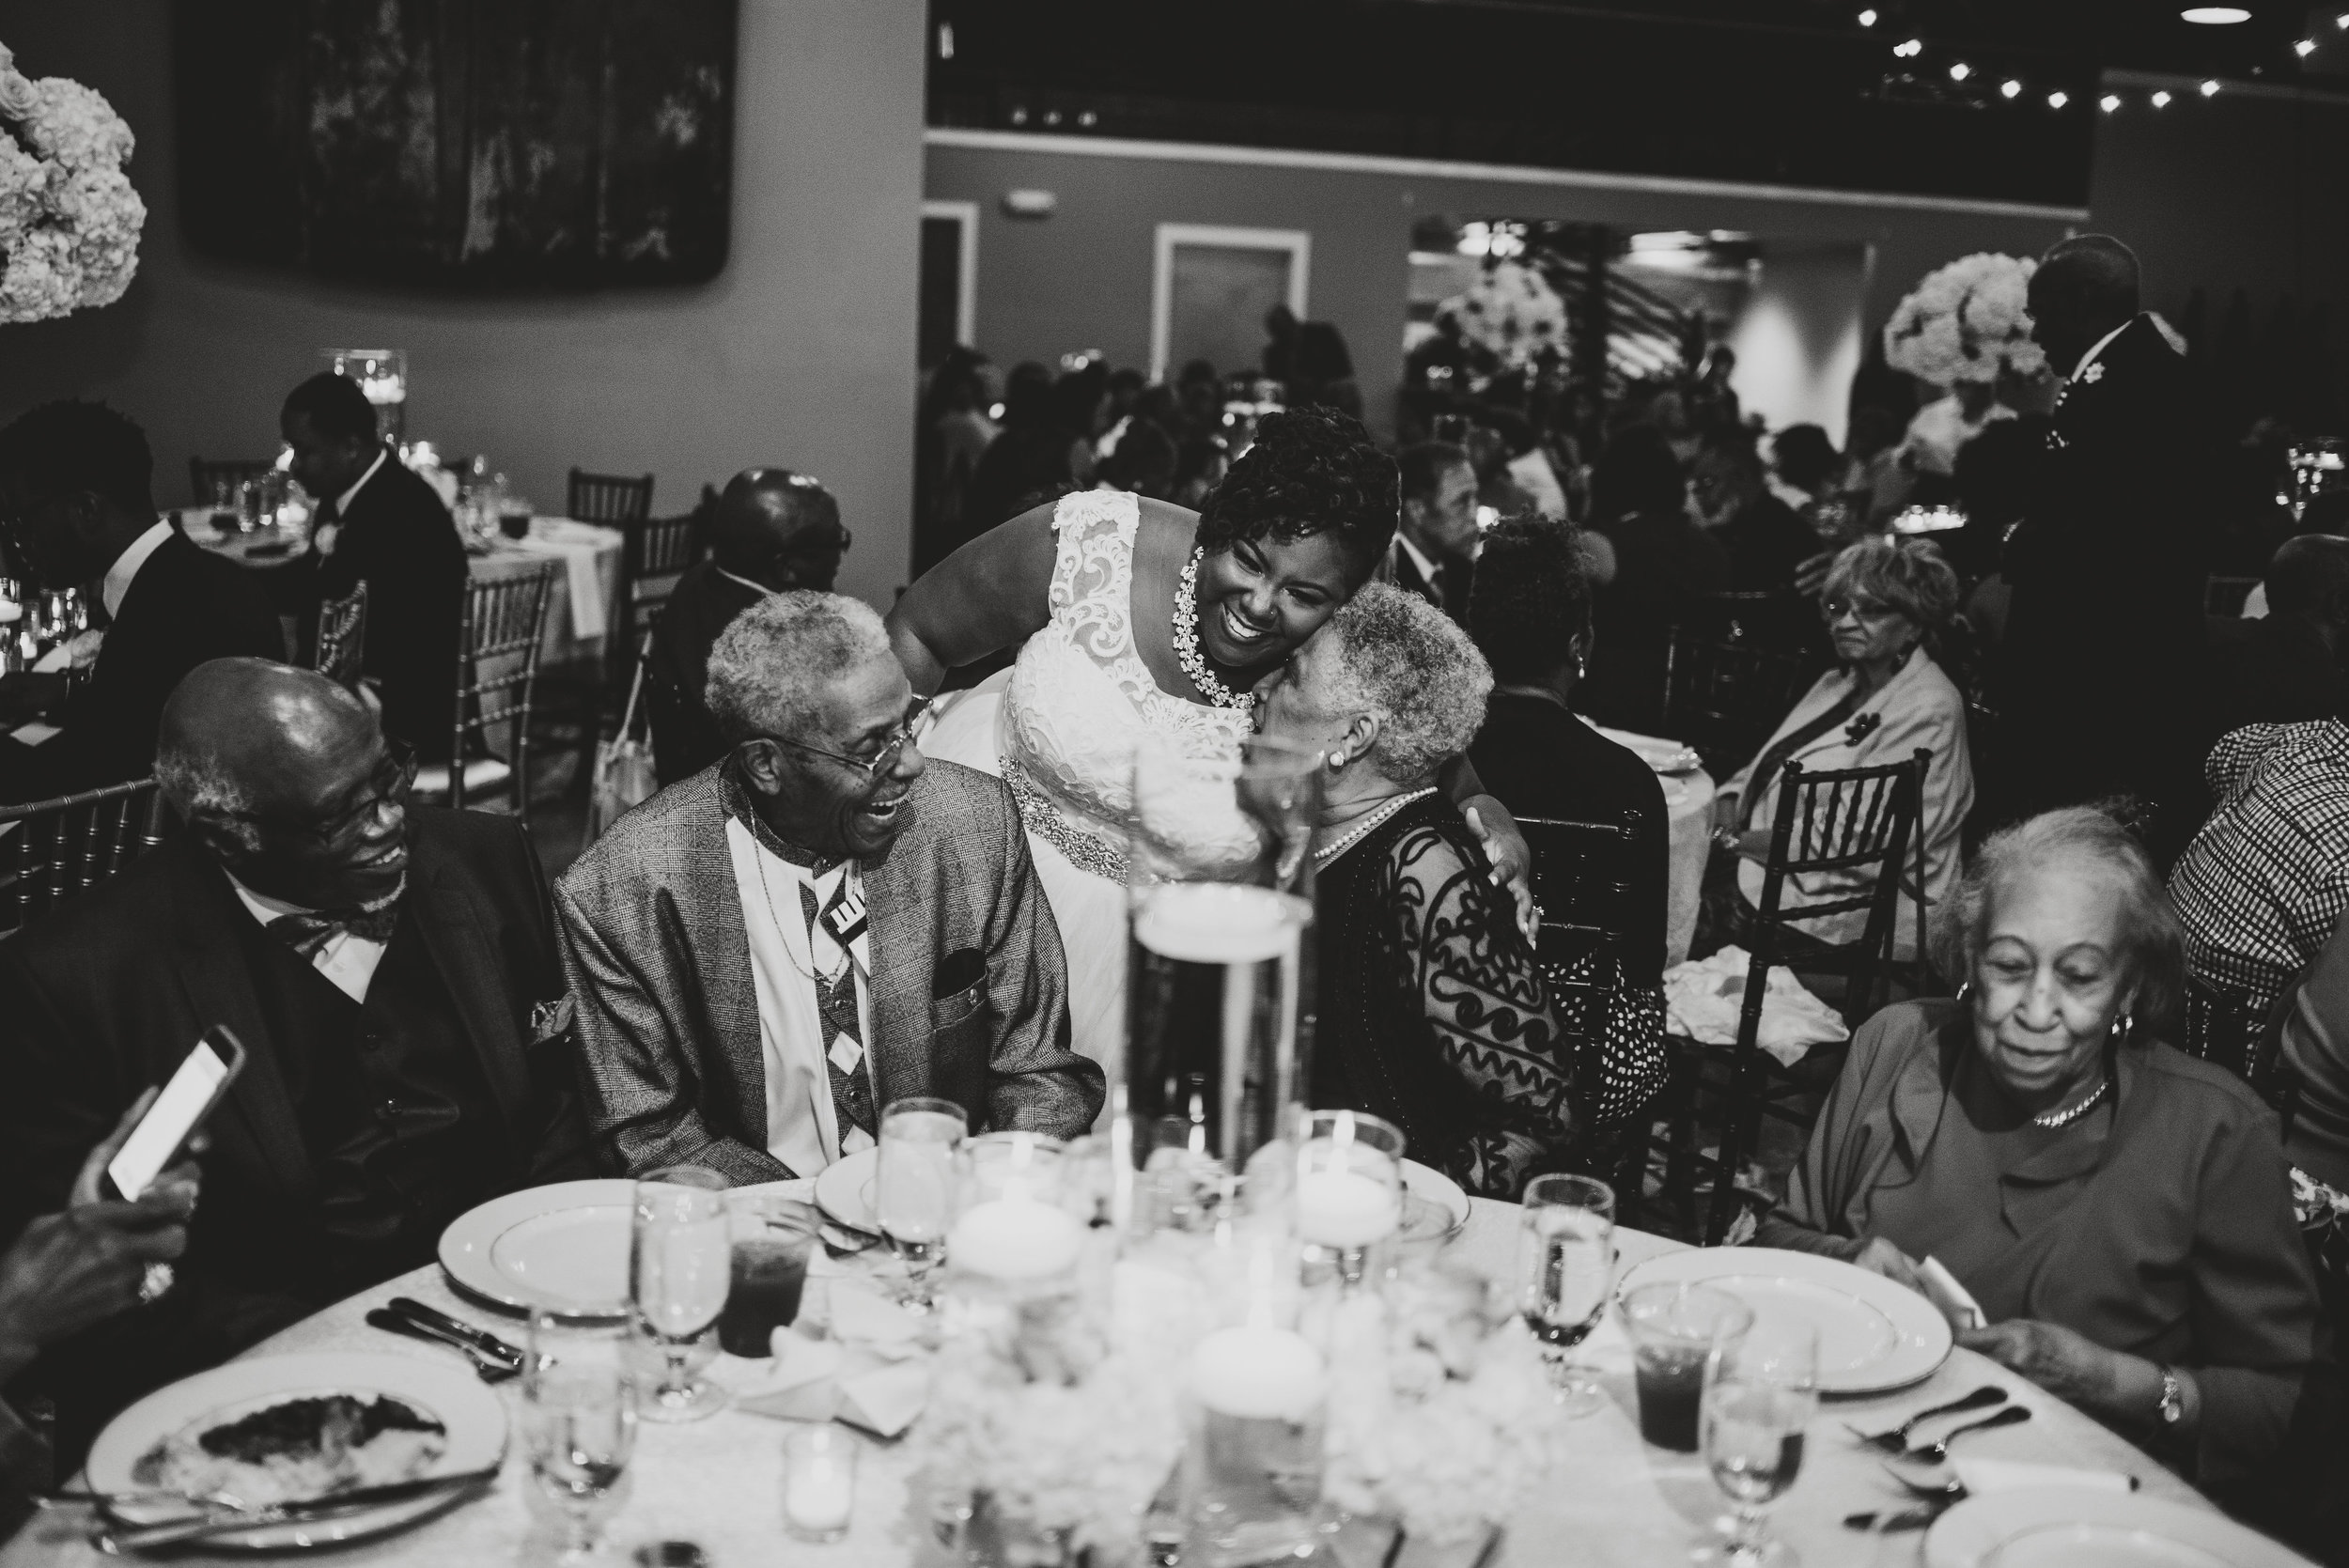 Happy guests at our wedding venue captured by Porshia Hernandez Photography